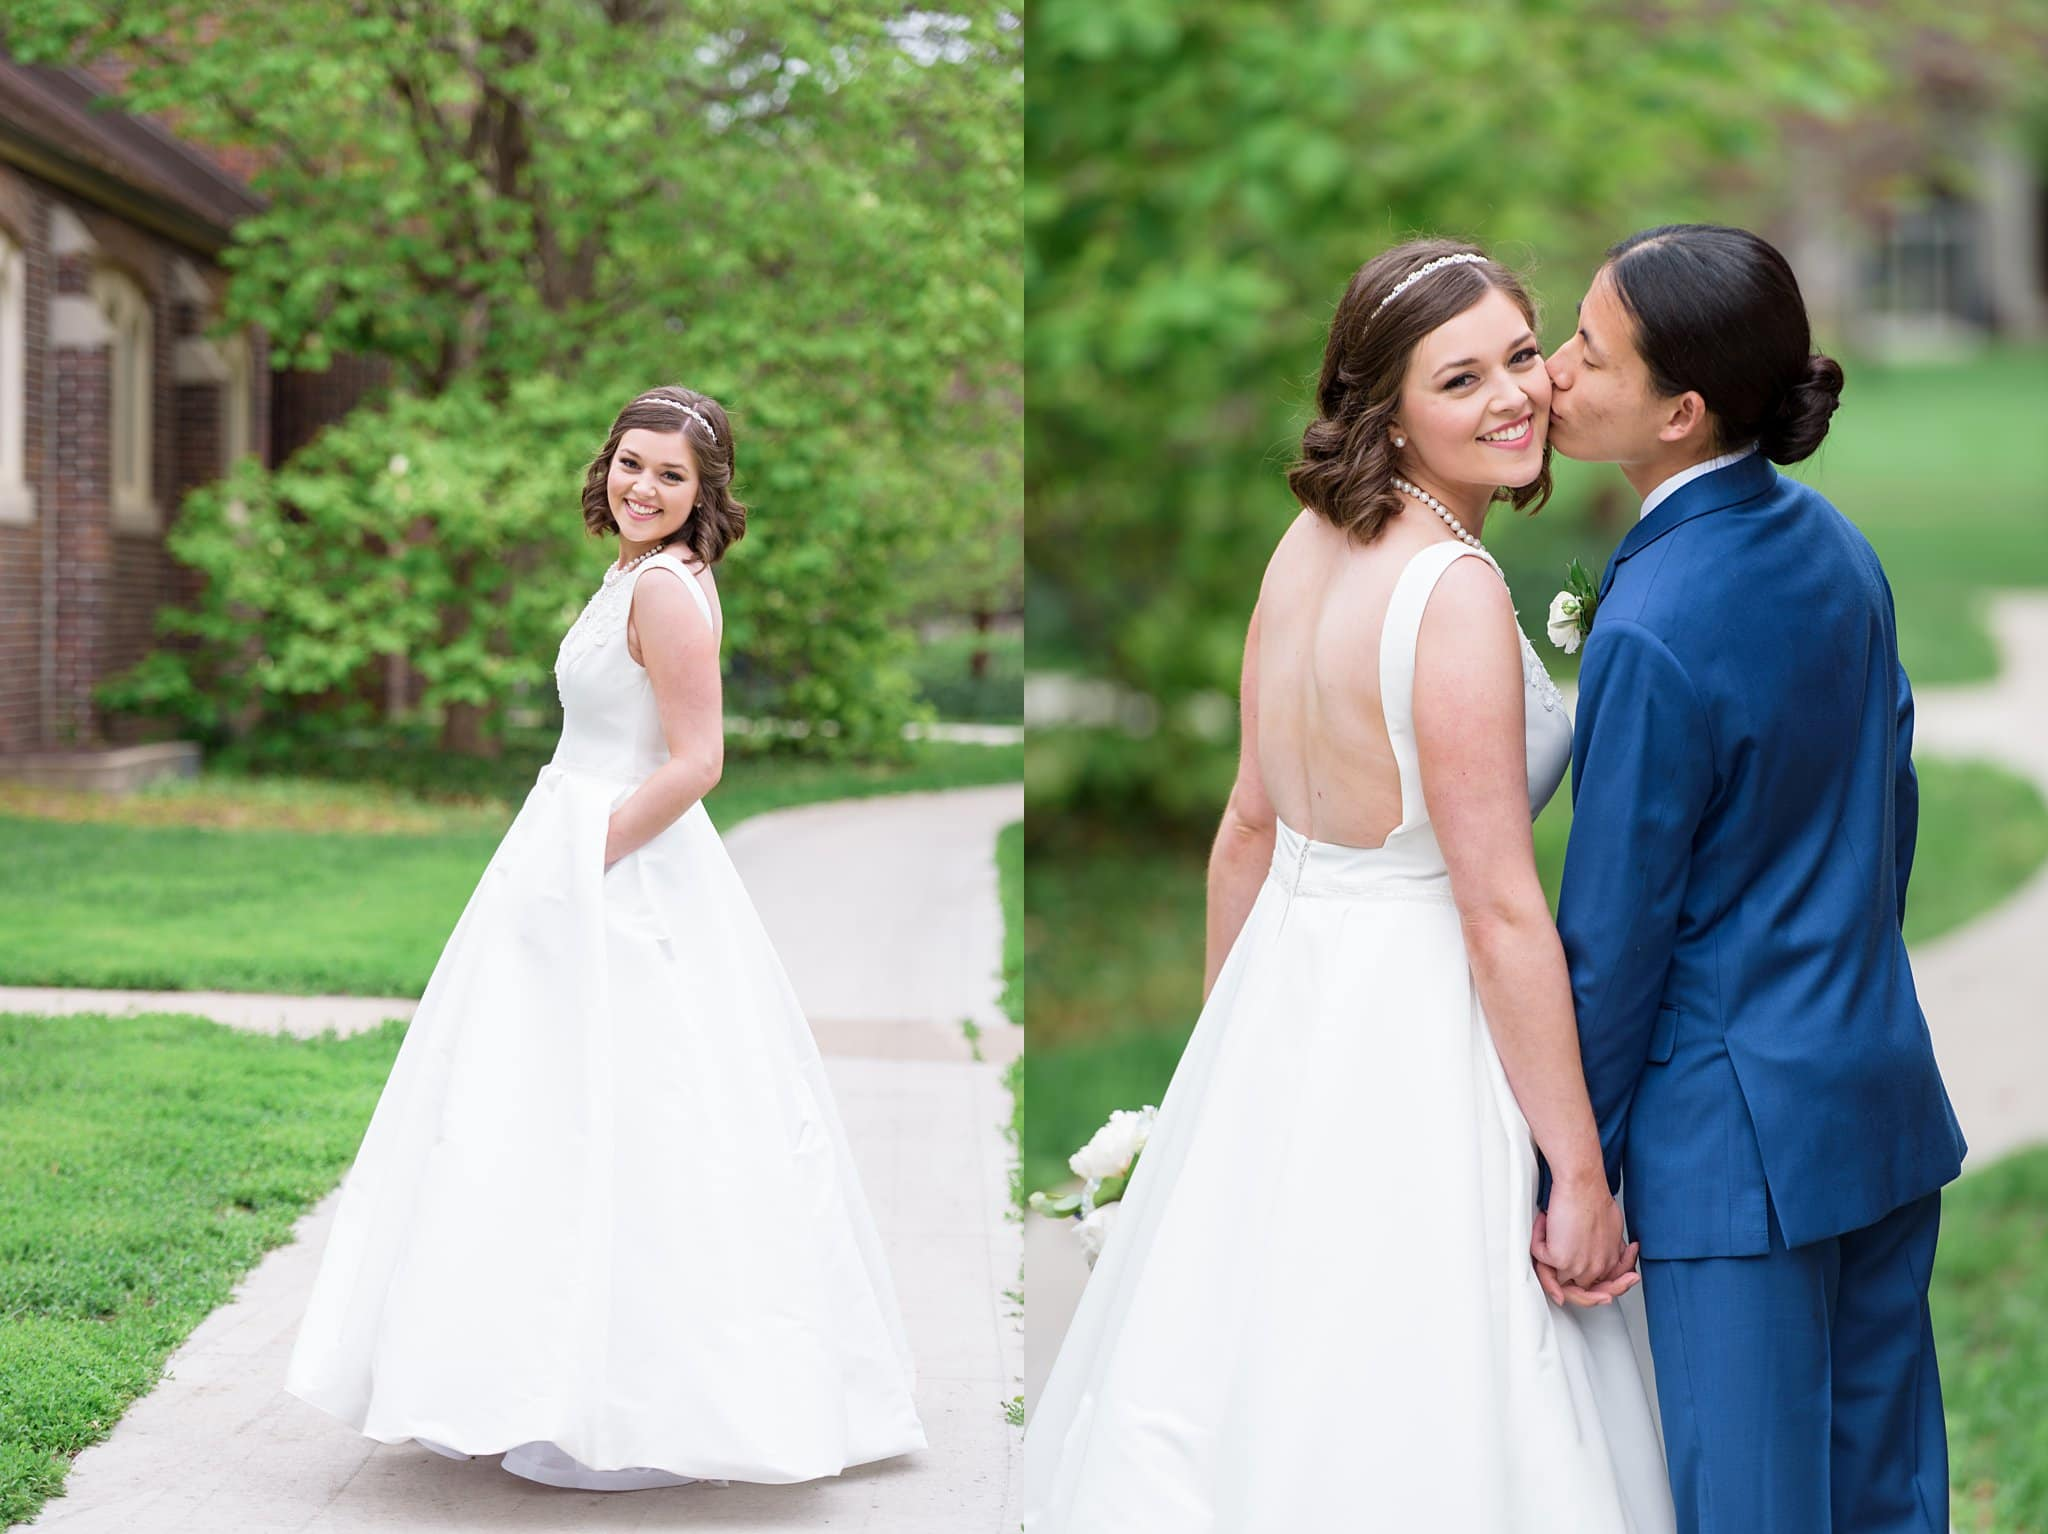 bride and groom after their wedding ceremony